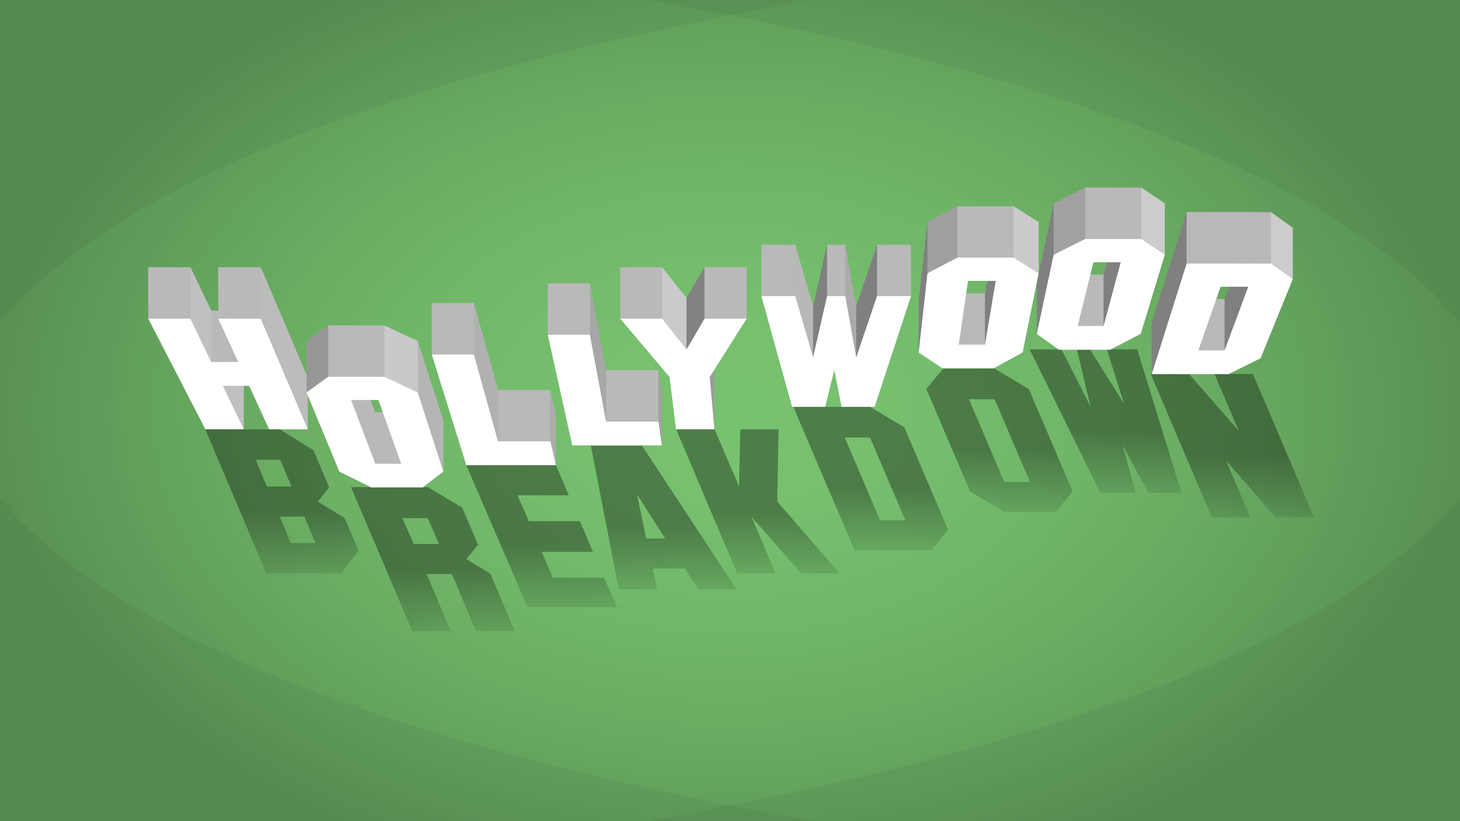 According to hundreds of text messages leaked to The Hollywood Reporter, Warner Bros. Chairman and CEO Kevin Tsujihara pushed for a young, unknown actress he was having a sexual relationship with to get auditions for Warner Bros. movies.